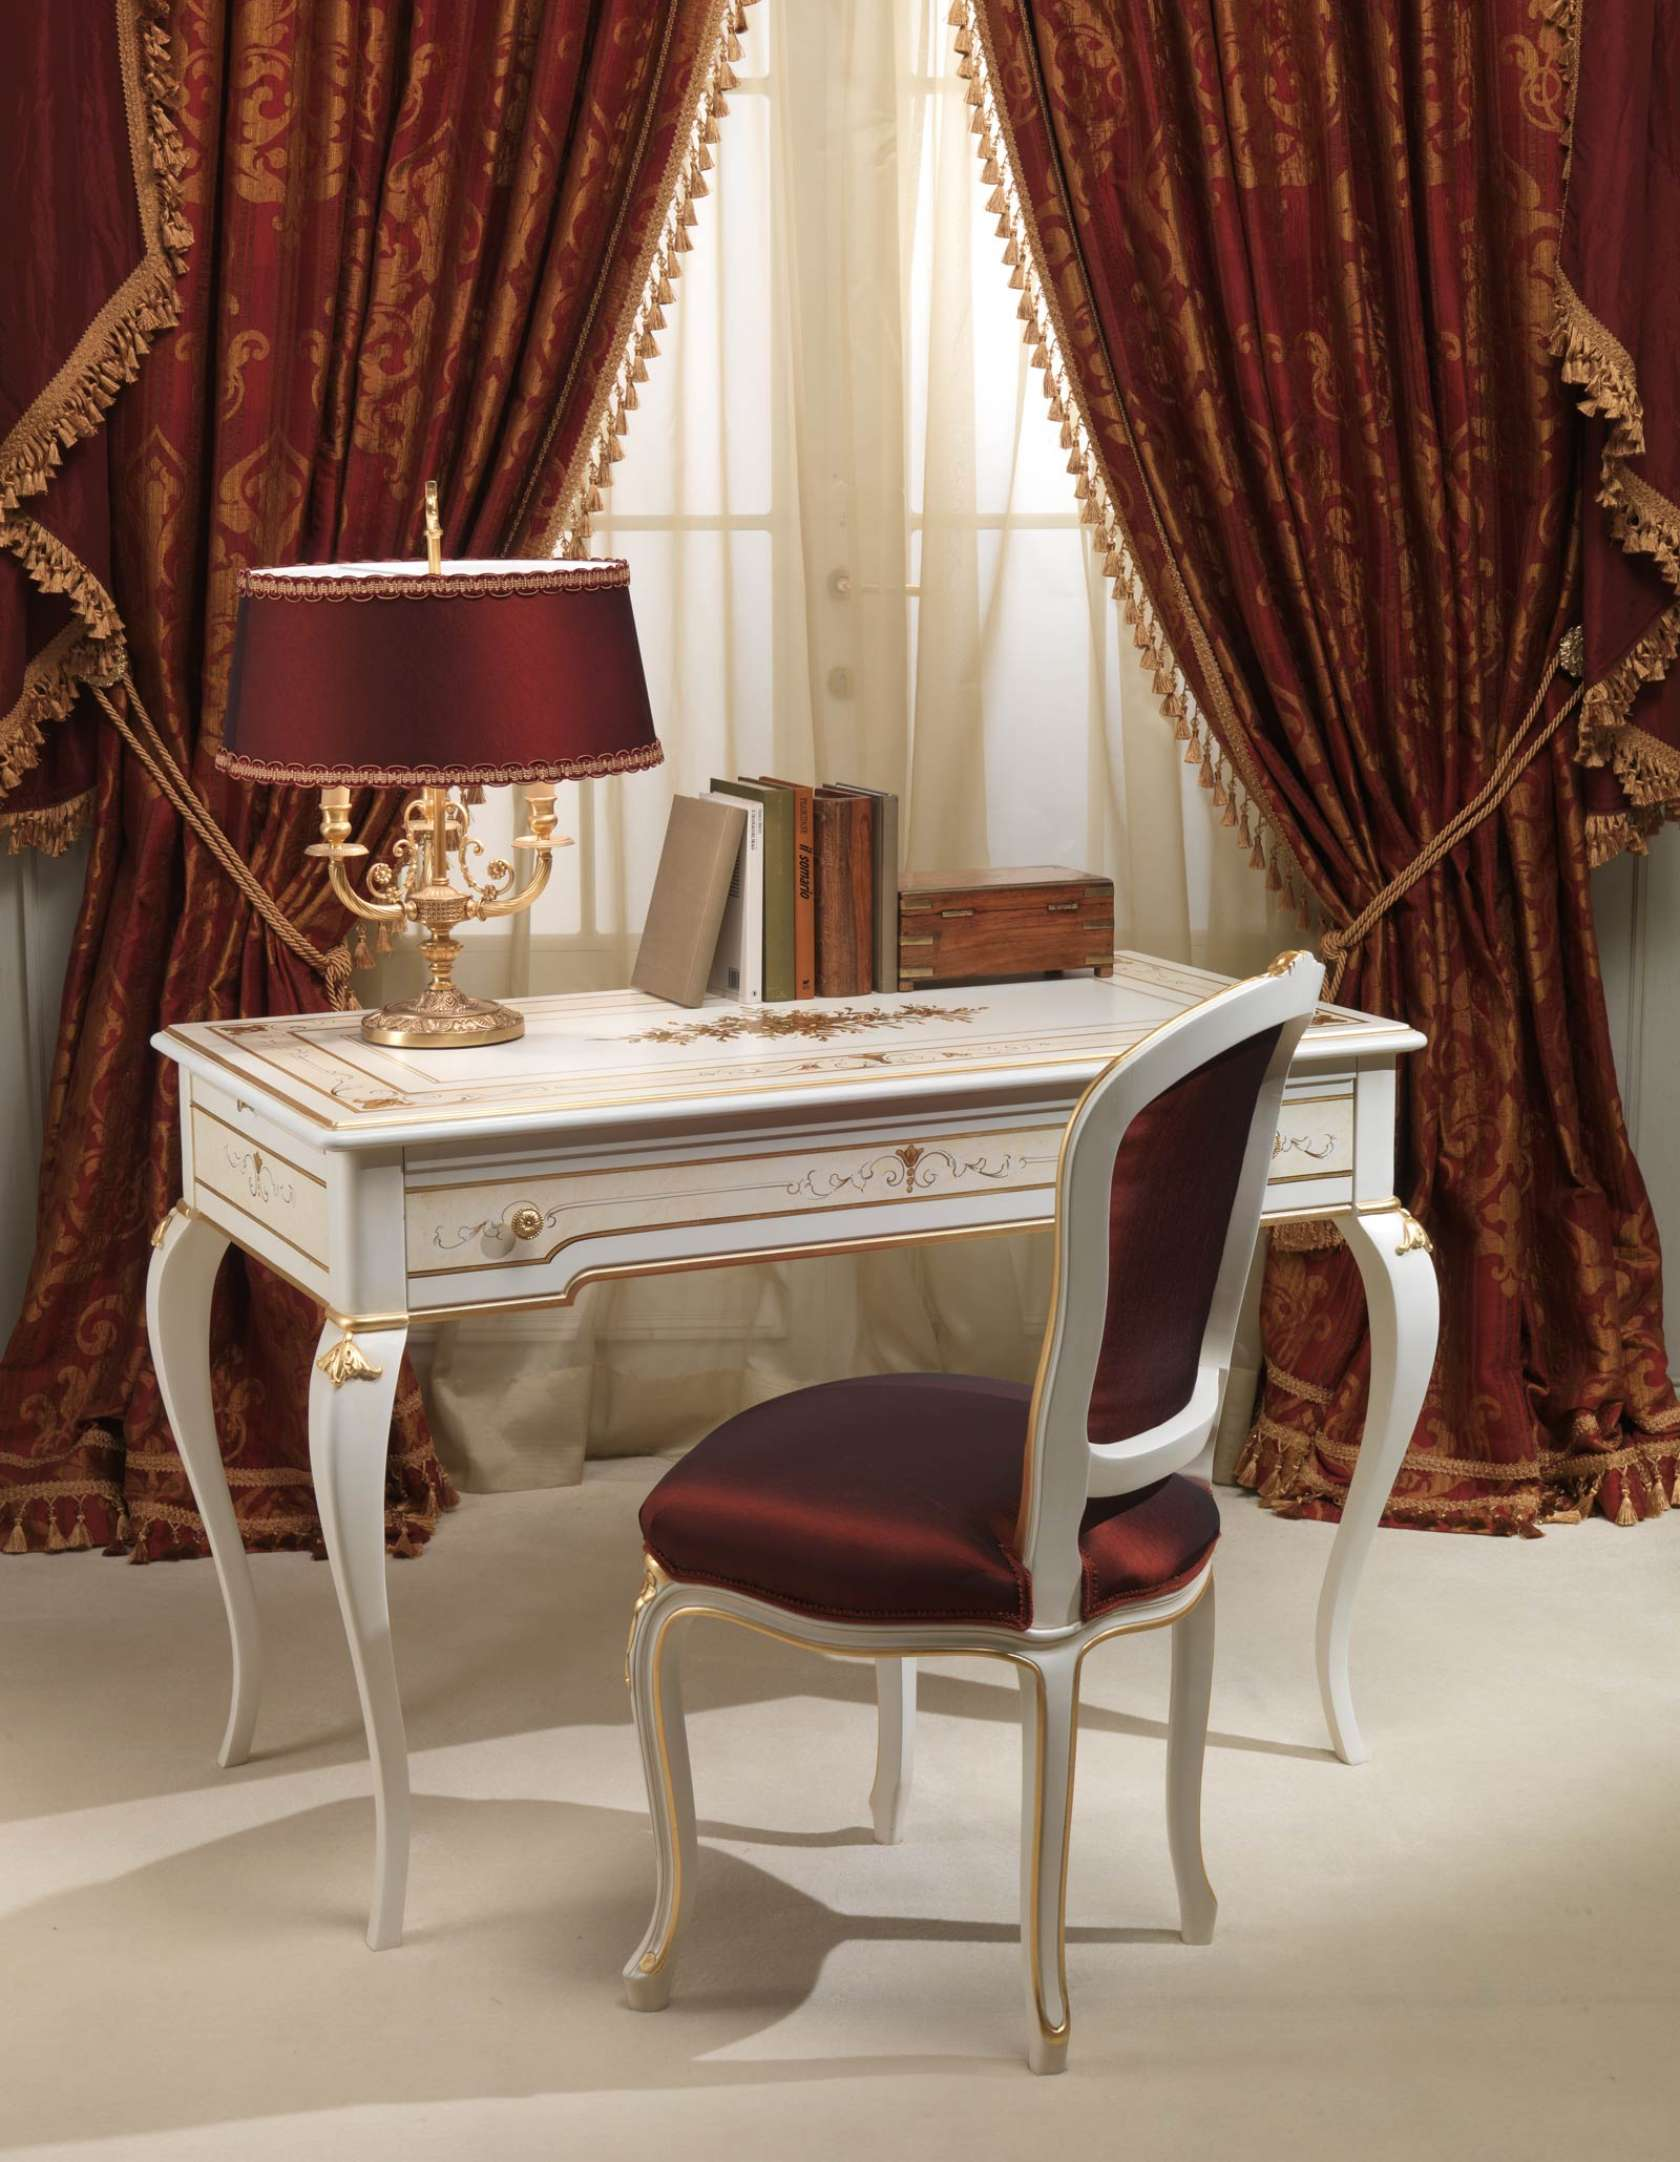 Classic Rubens 18th Century French Style Bedroom Desk And Chair